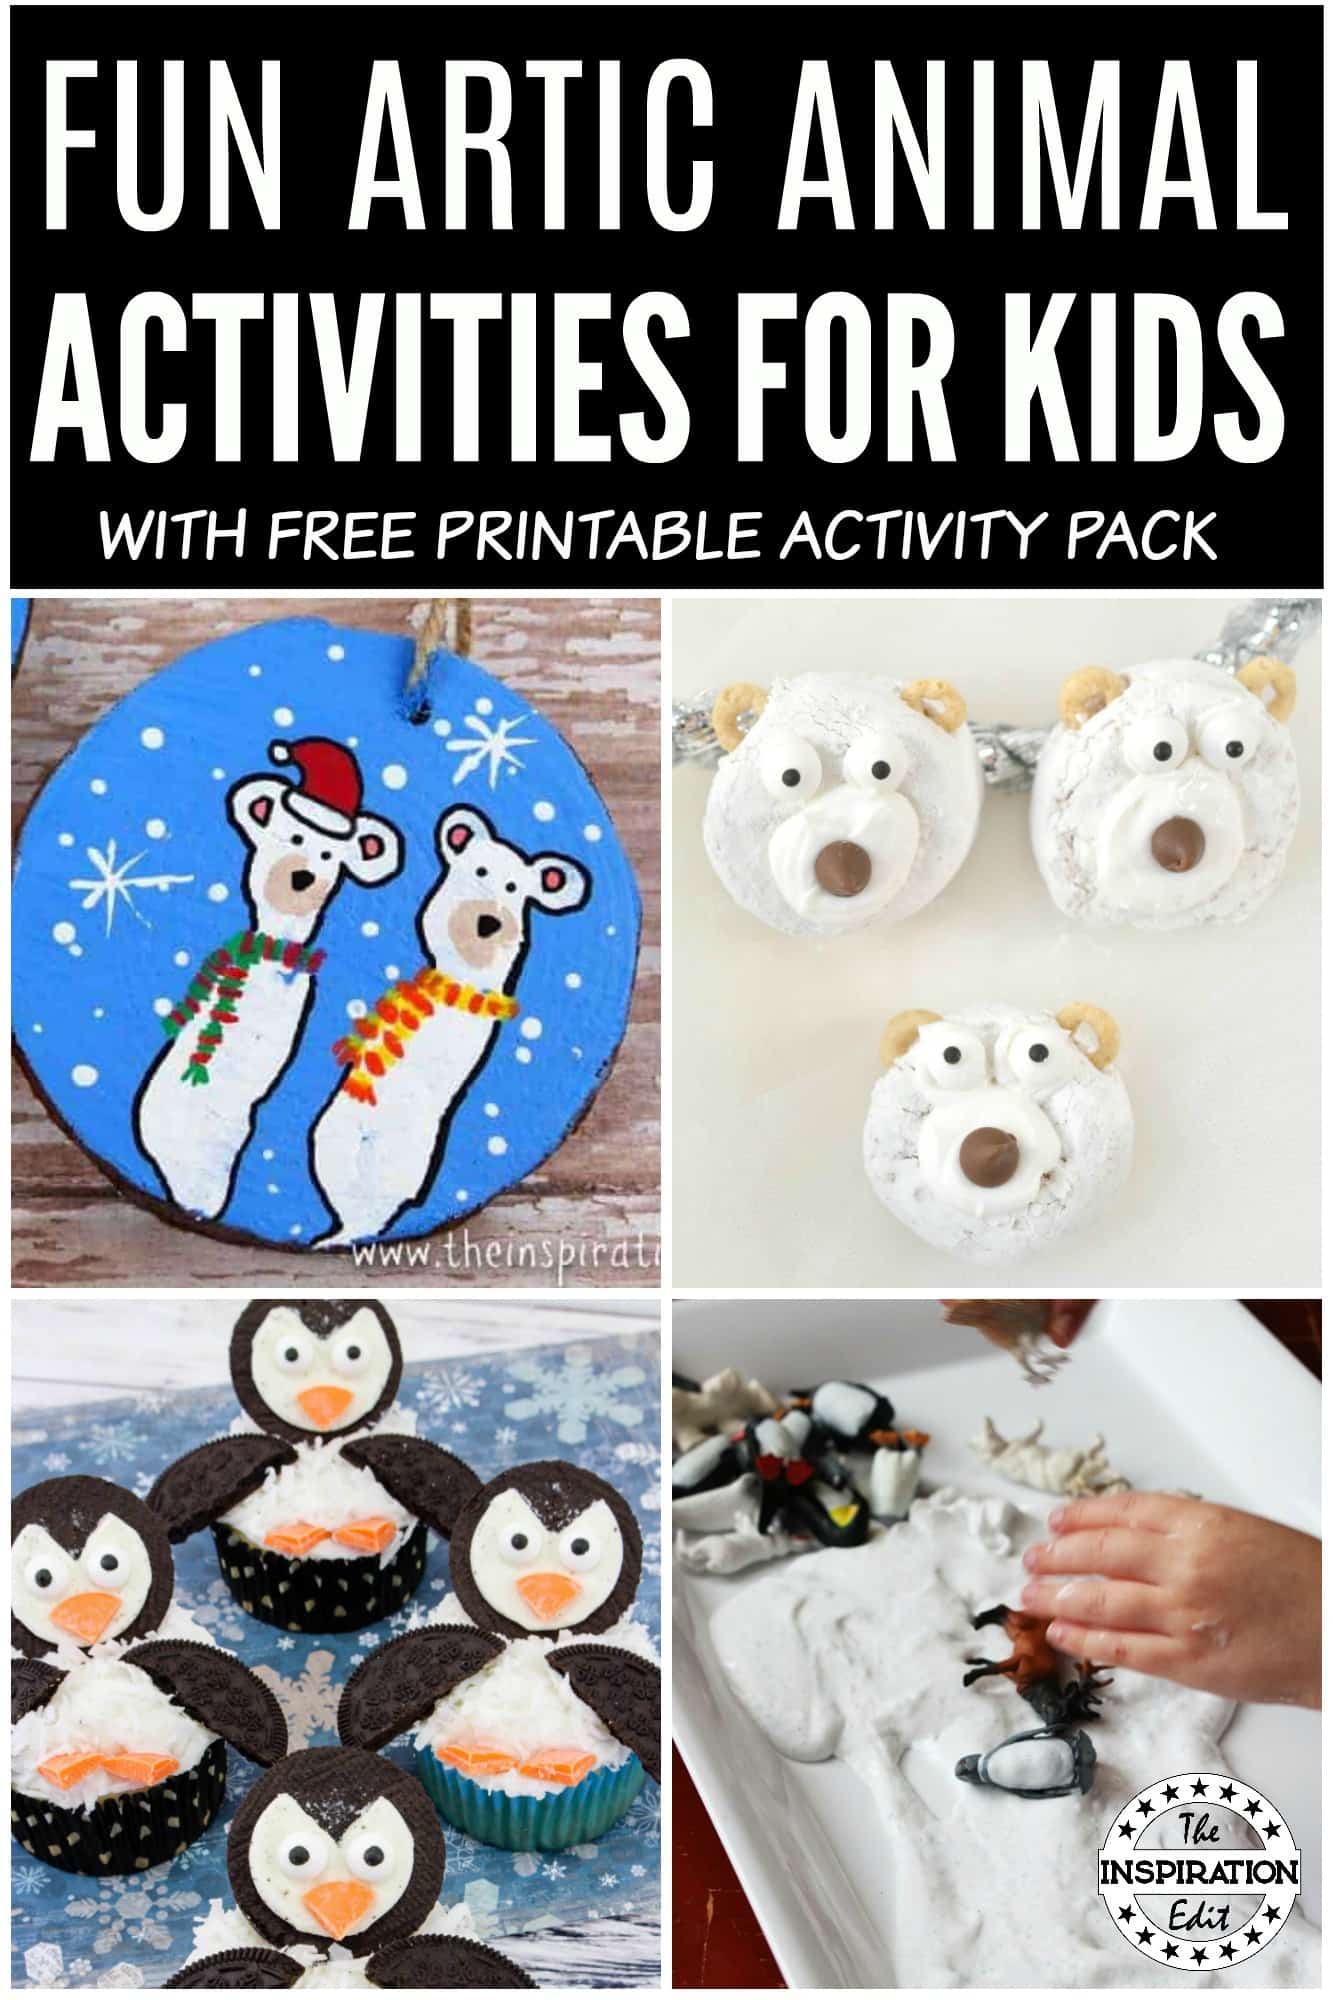 Fun Artic Animals activities for kids to enjoy learning about the artic and polar